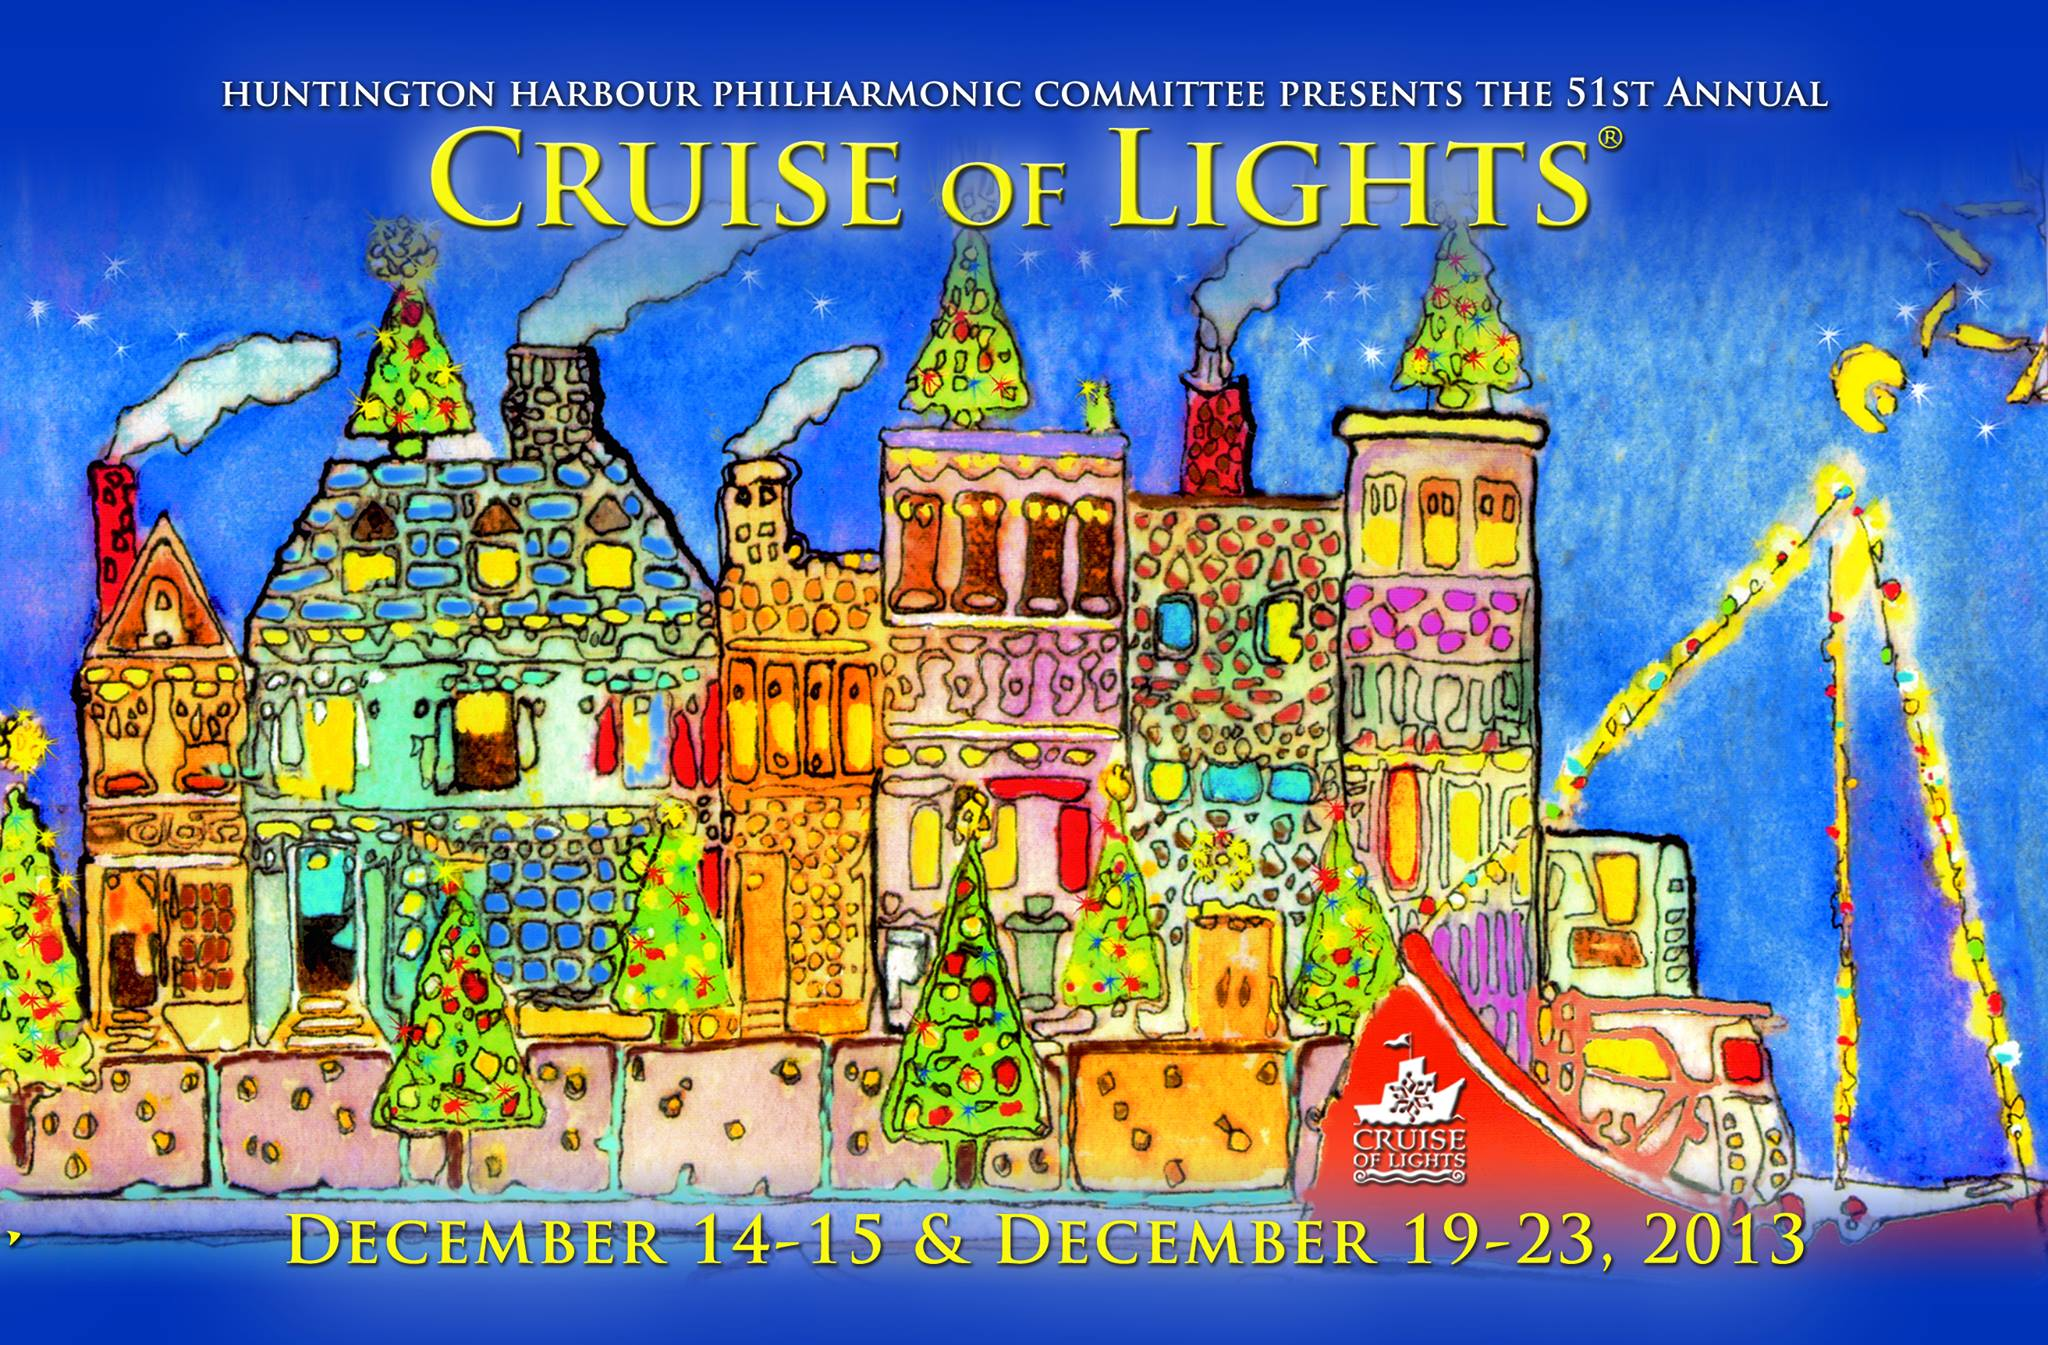 Huntington Harbour Cruise of Lights to Benefit Youth Music Programs